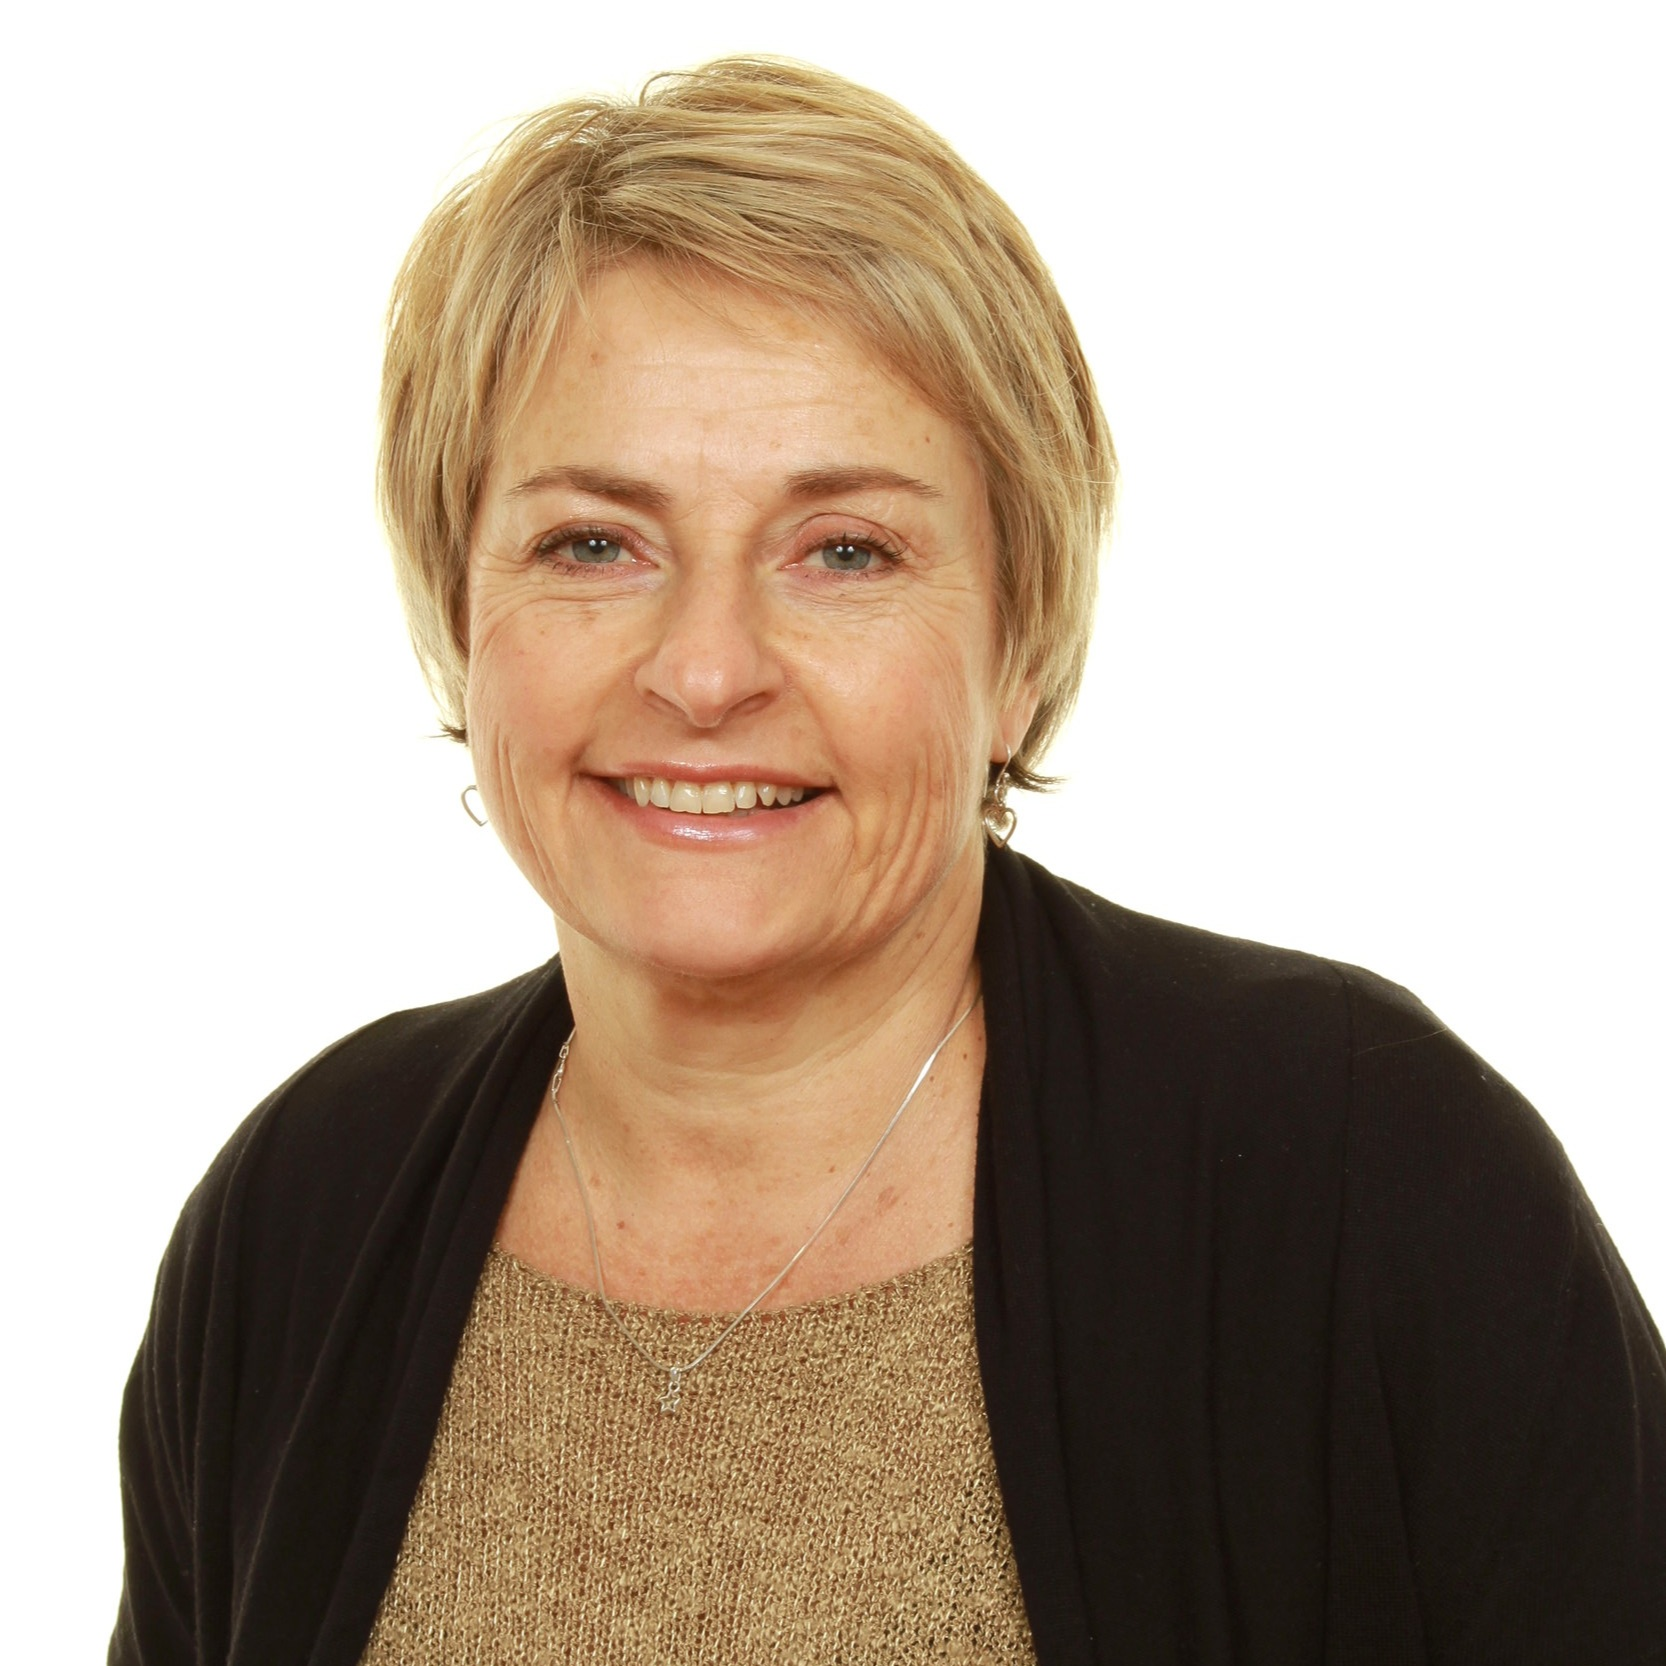 Manager - Tracey Sparks, BA in Childhood Studies (EYPS)